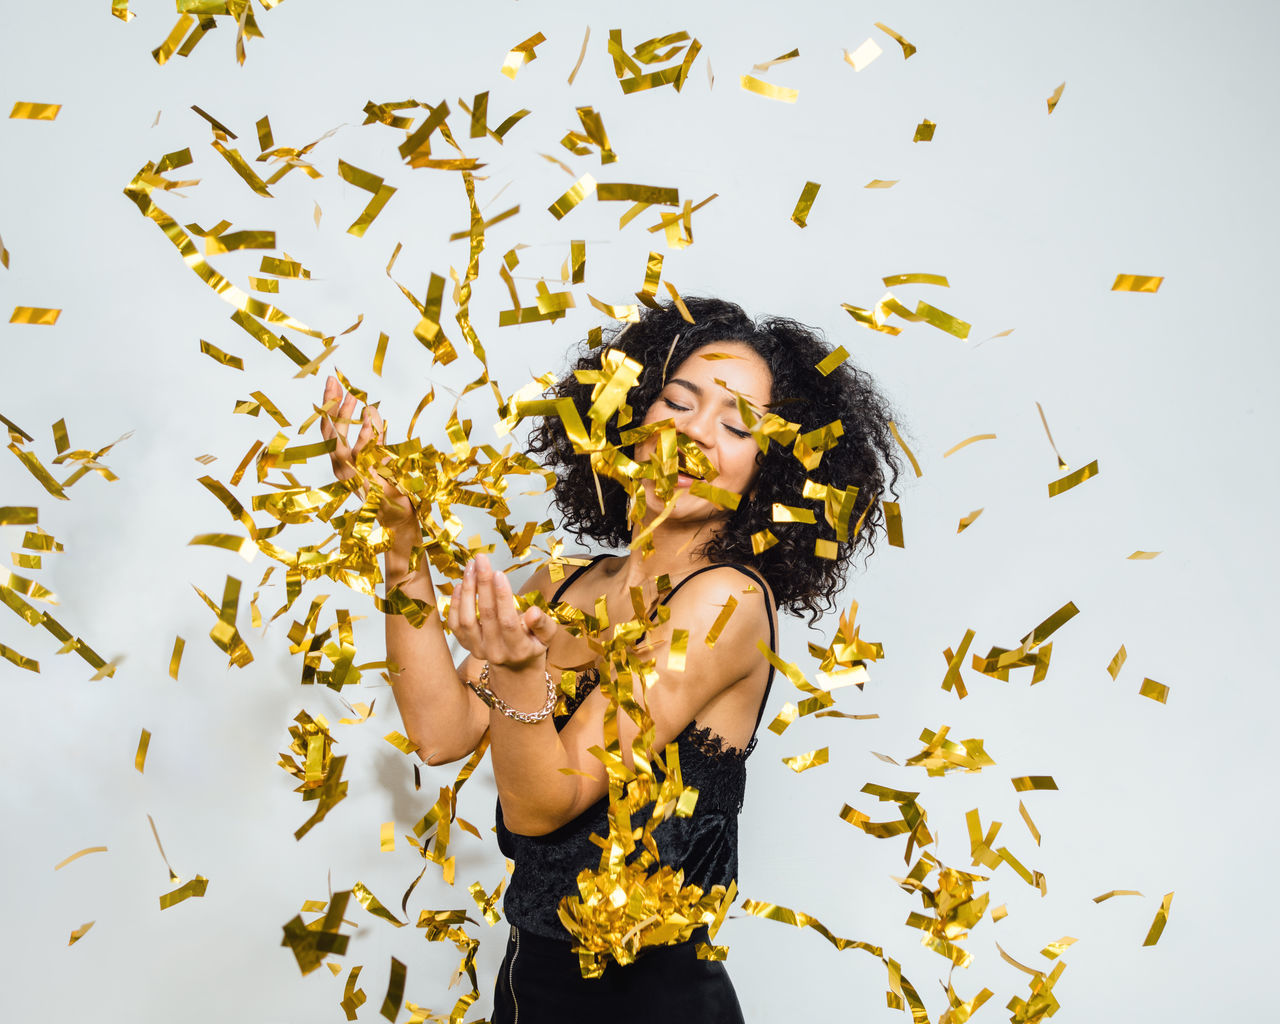 Adults Only African American Anniversary Birthday Brunette Candid Celebration Confetti Eve Event Female Fun Golden Happy Indoors  New Year One Person Party People Smiling Throwing  Woman Young Adult